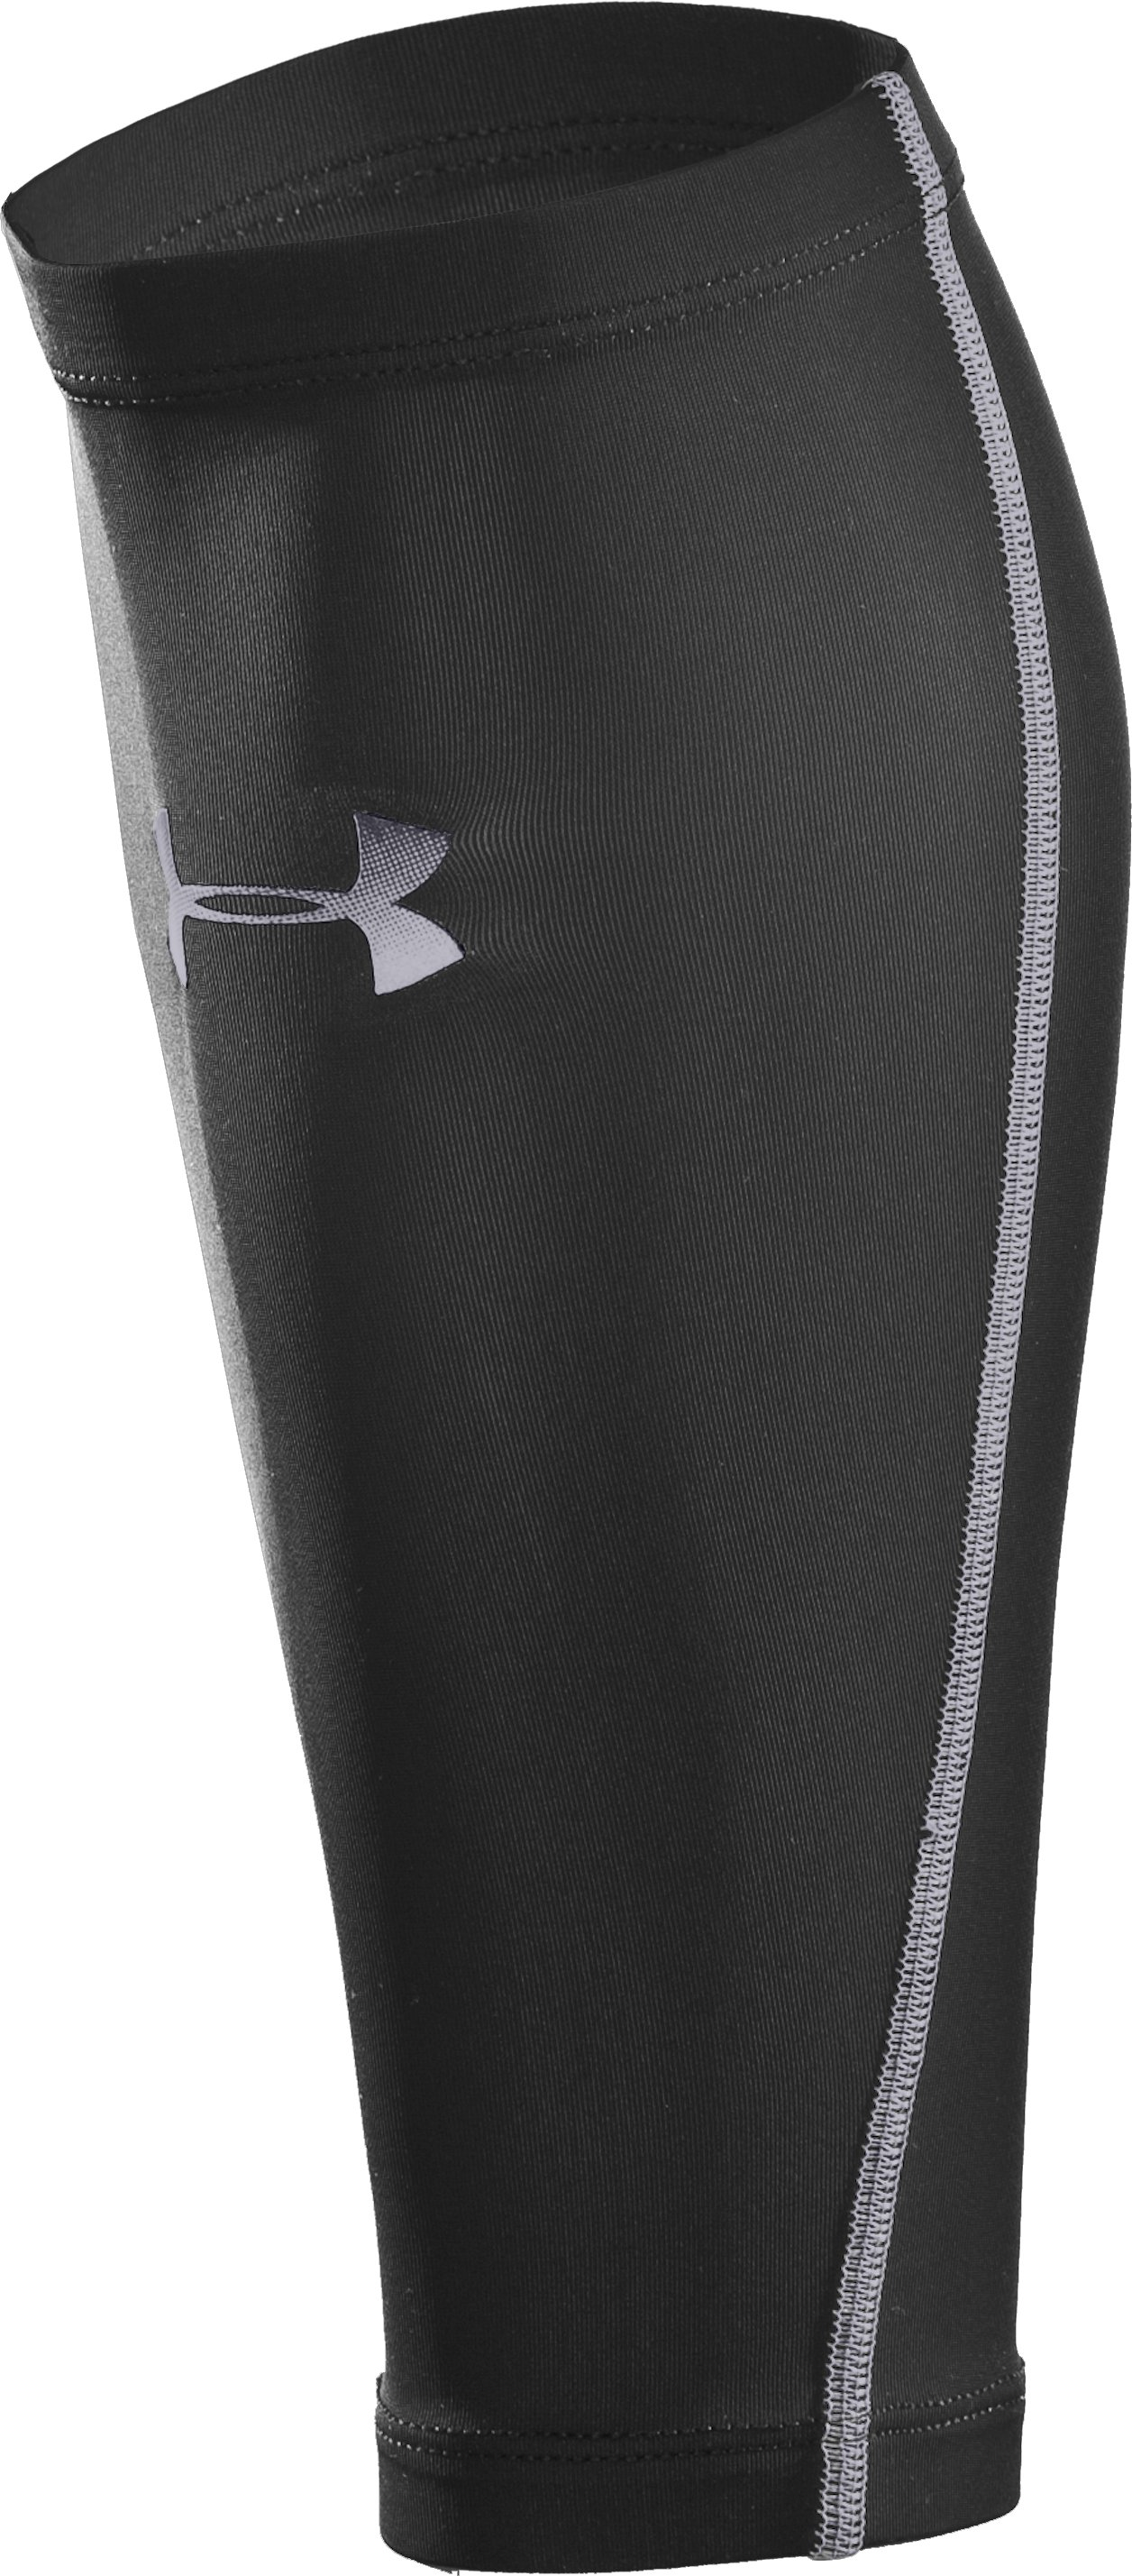 Compression Calf Sleeve, Black , undefined